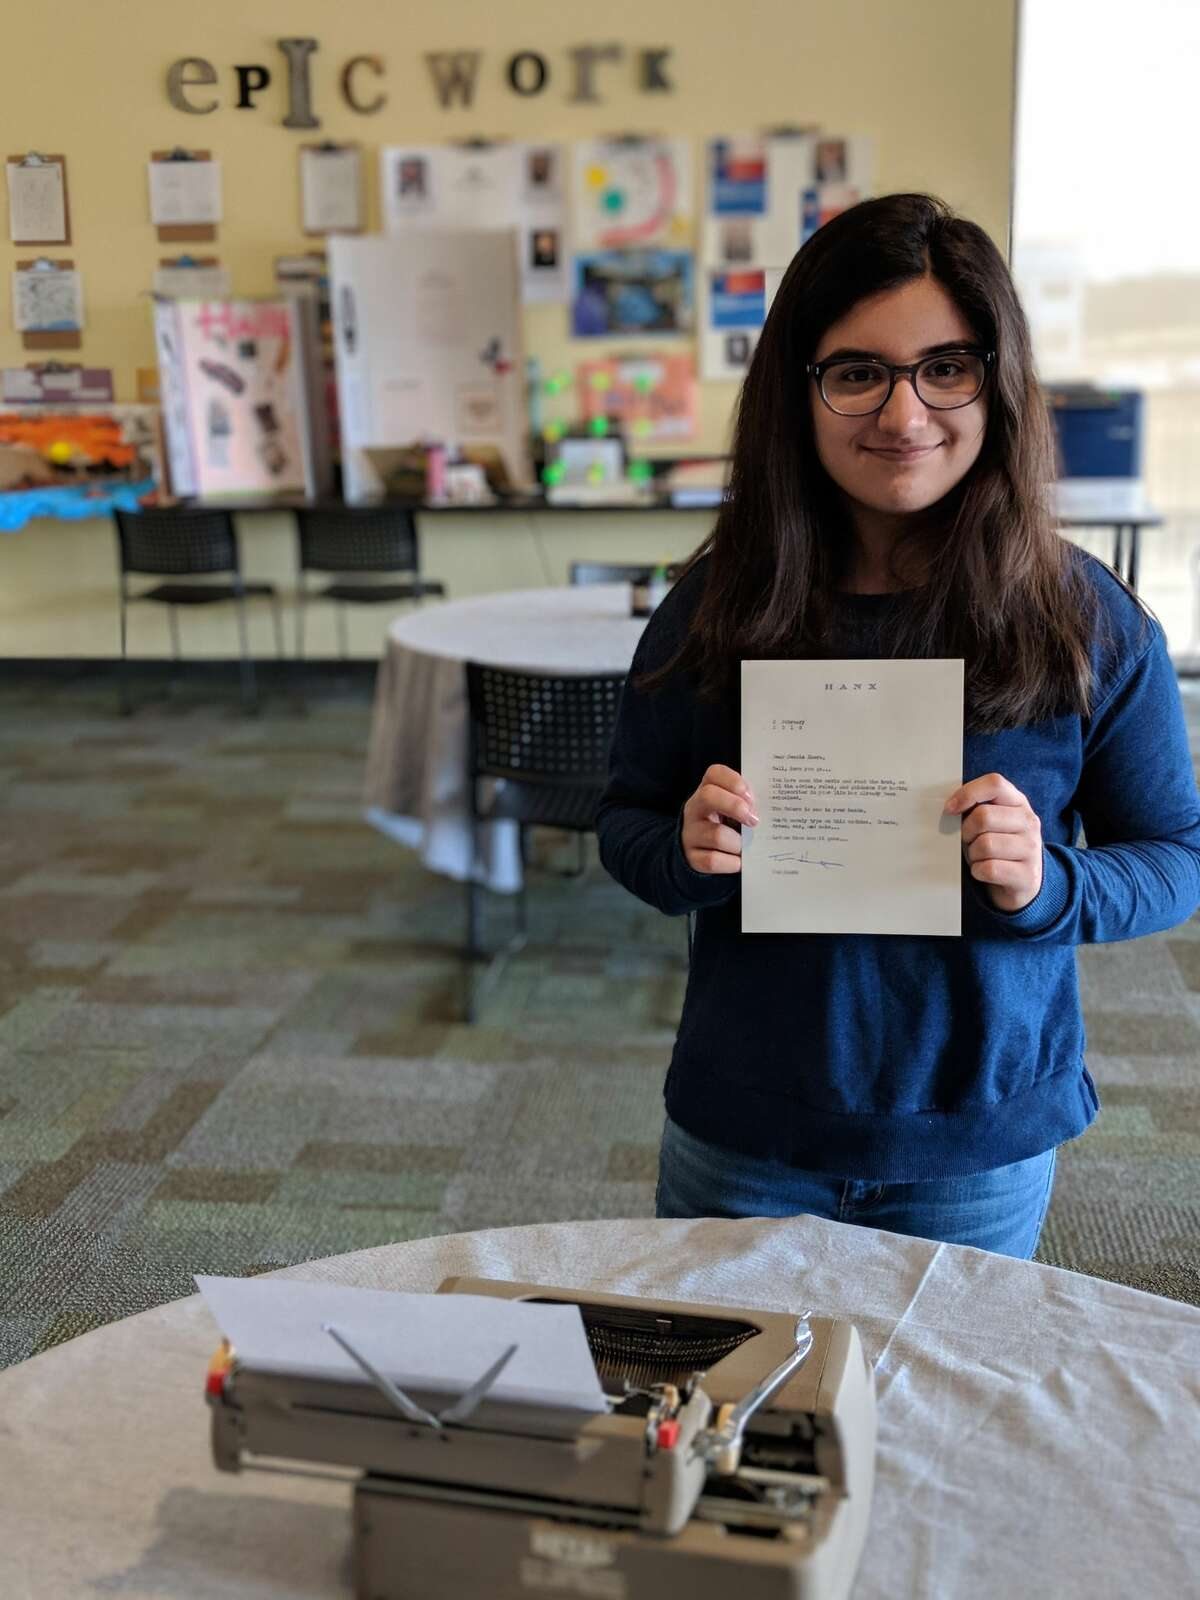 Jessica Khera, 15, holds a letter from Tom Hanks, next to the typewriter he sent her. Khera said she was inspired to reach out to Hanks after reading his book